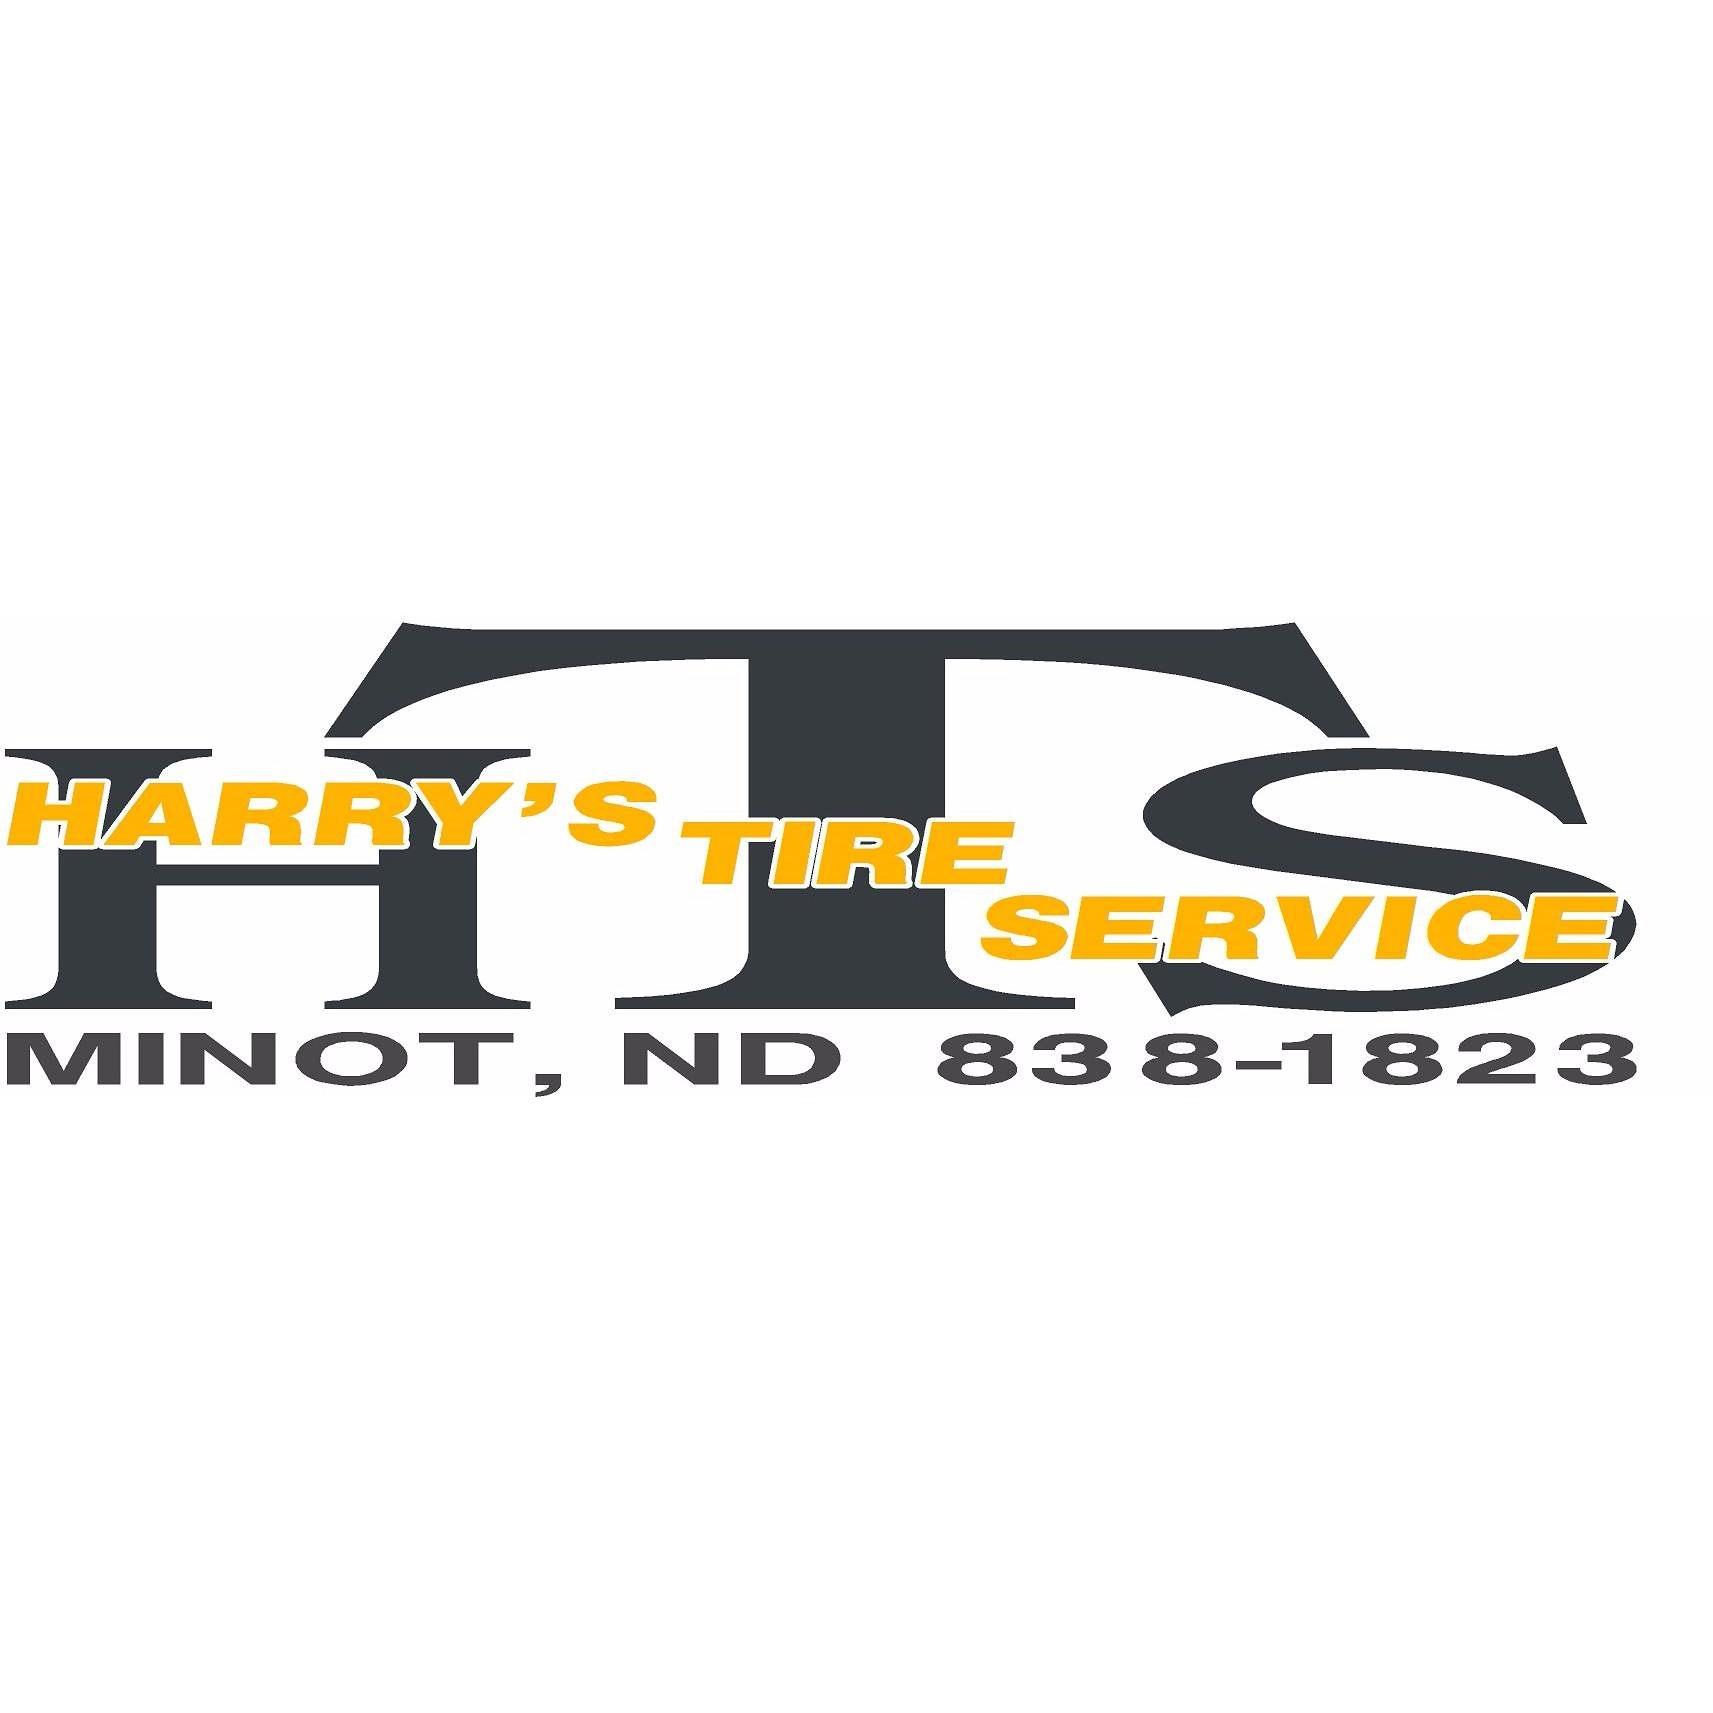 Harrys Tire Service Minot North Dakota Nd